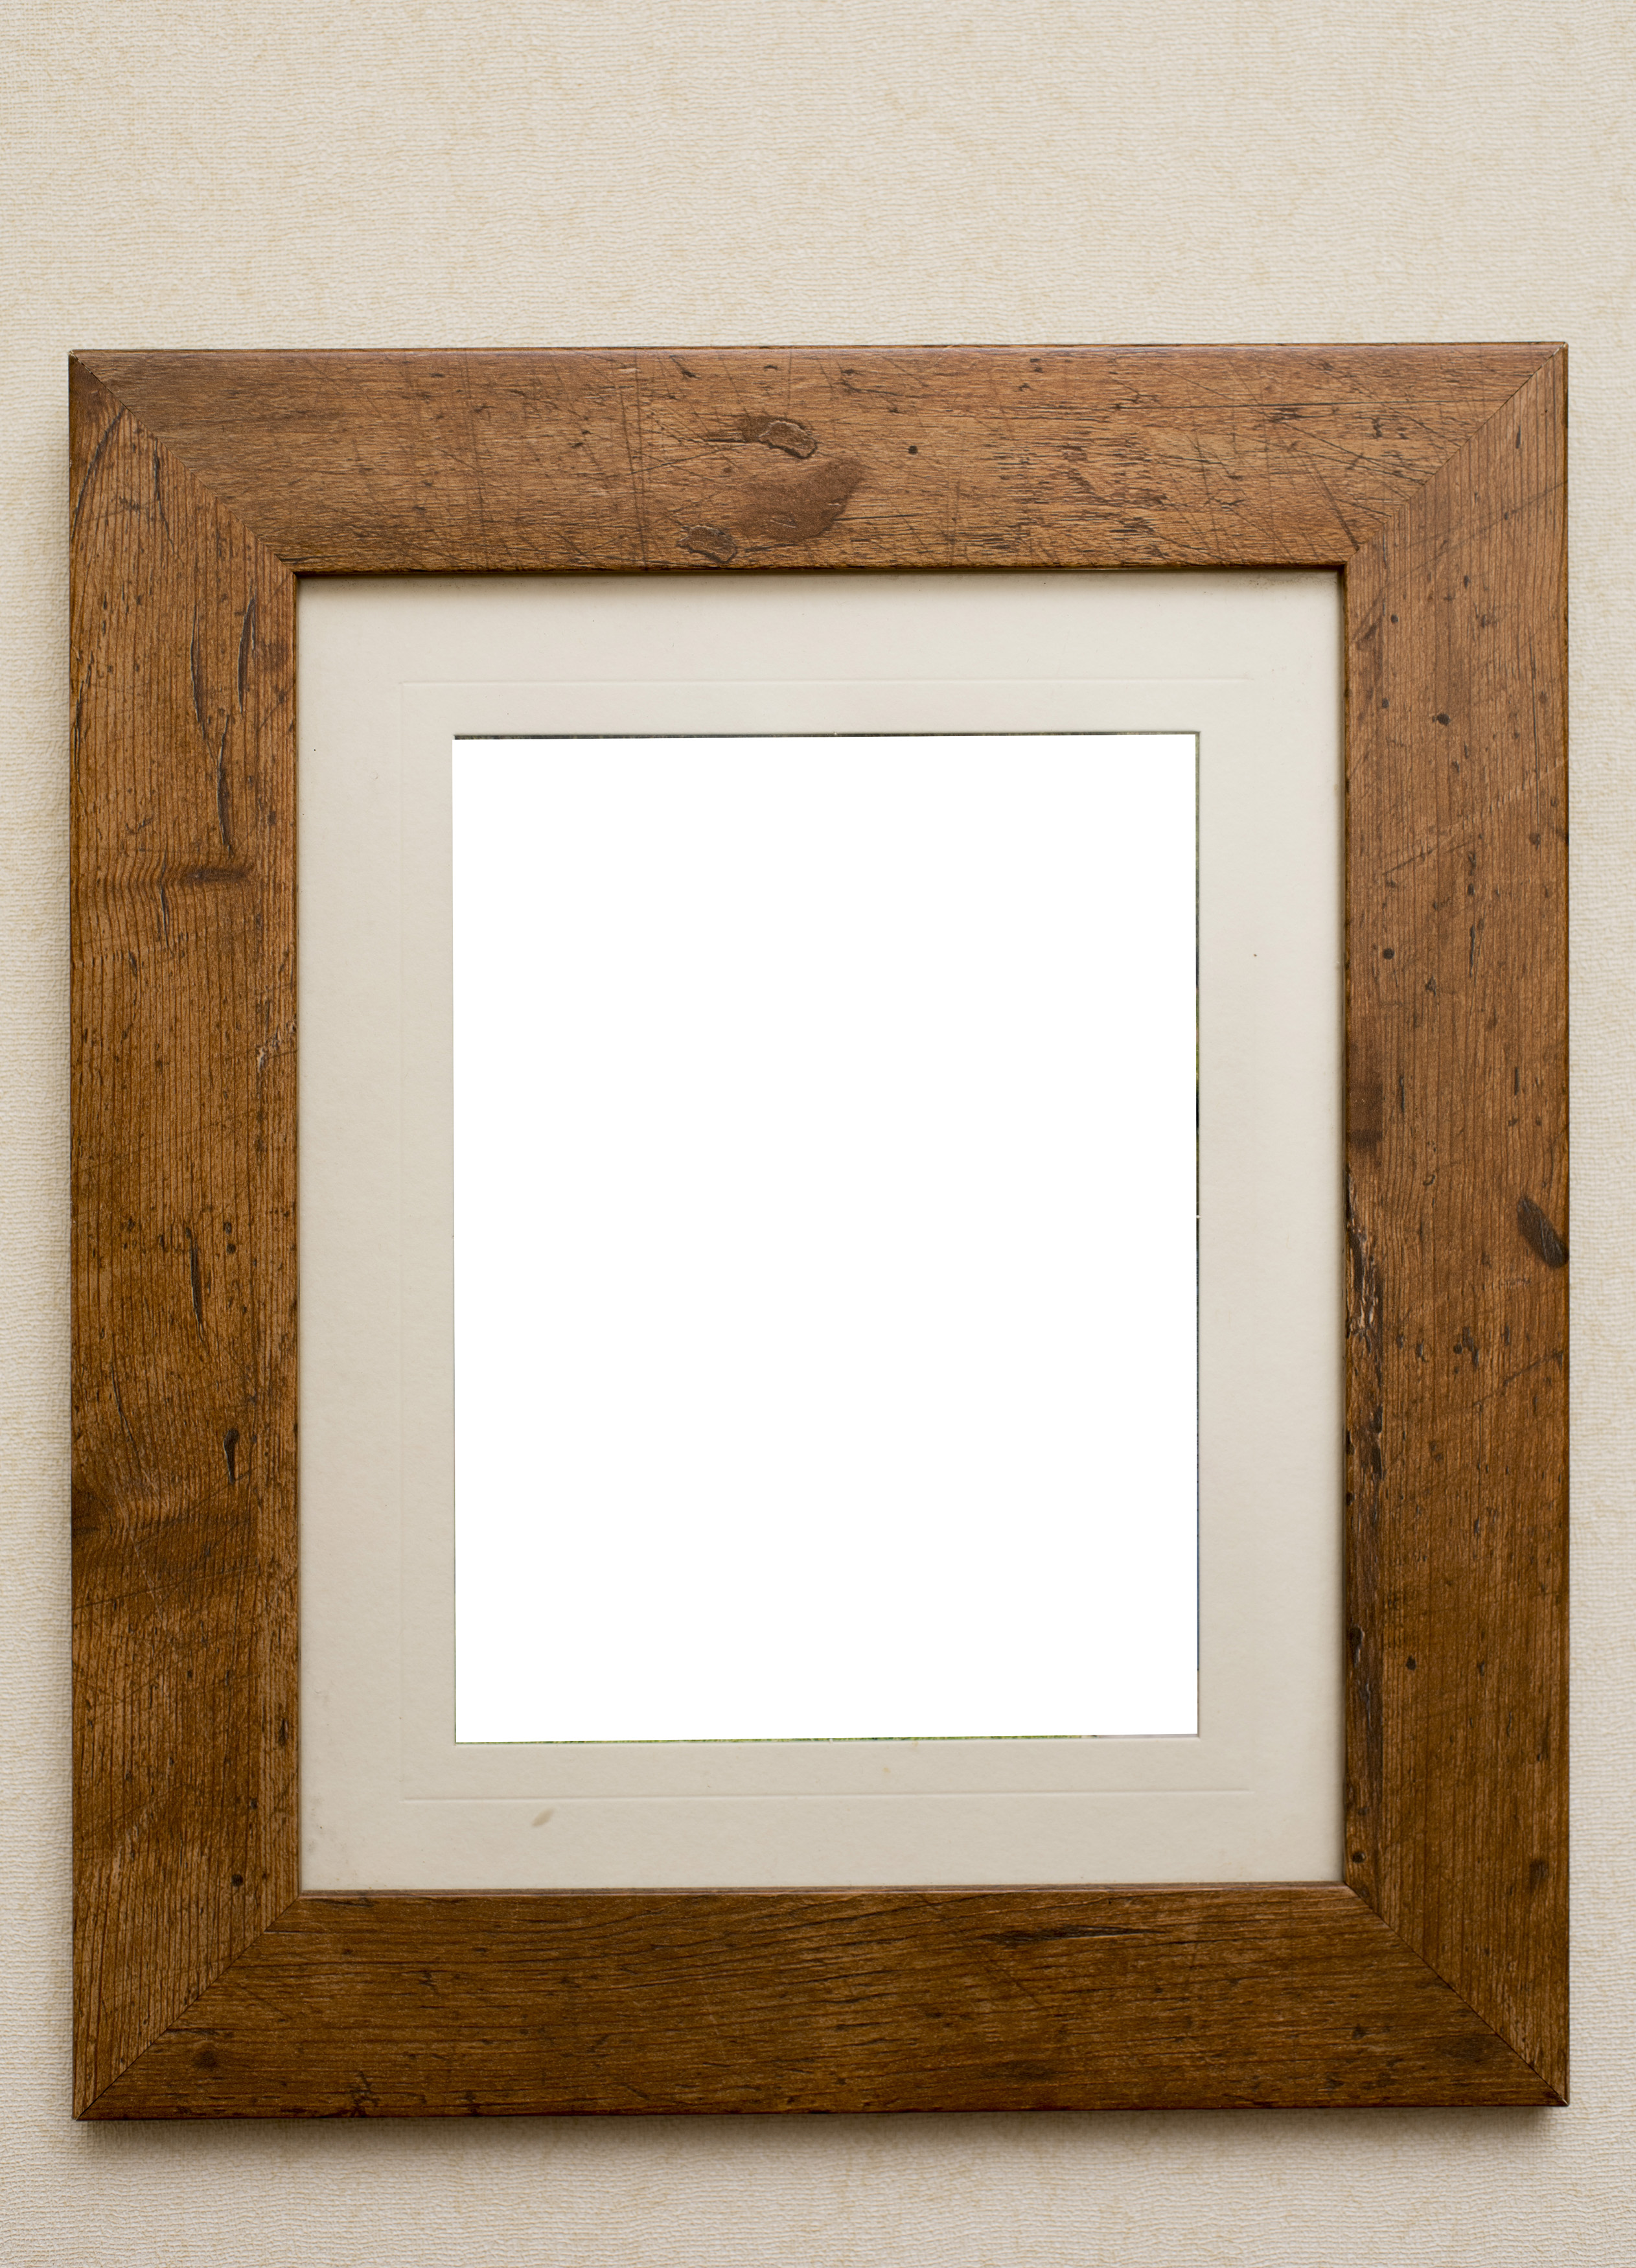 free image of plain rustic wooden picture frame